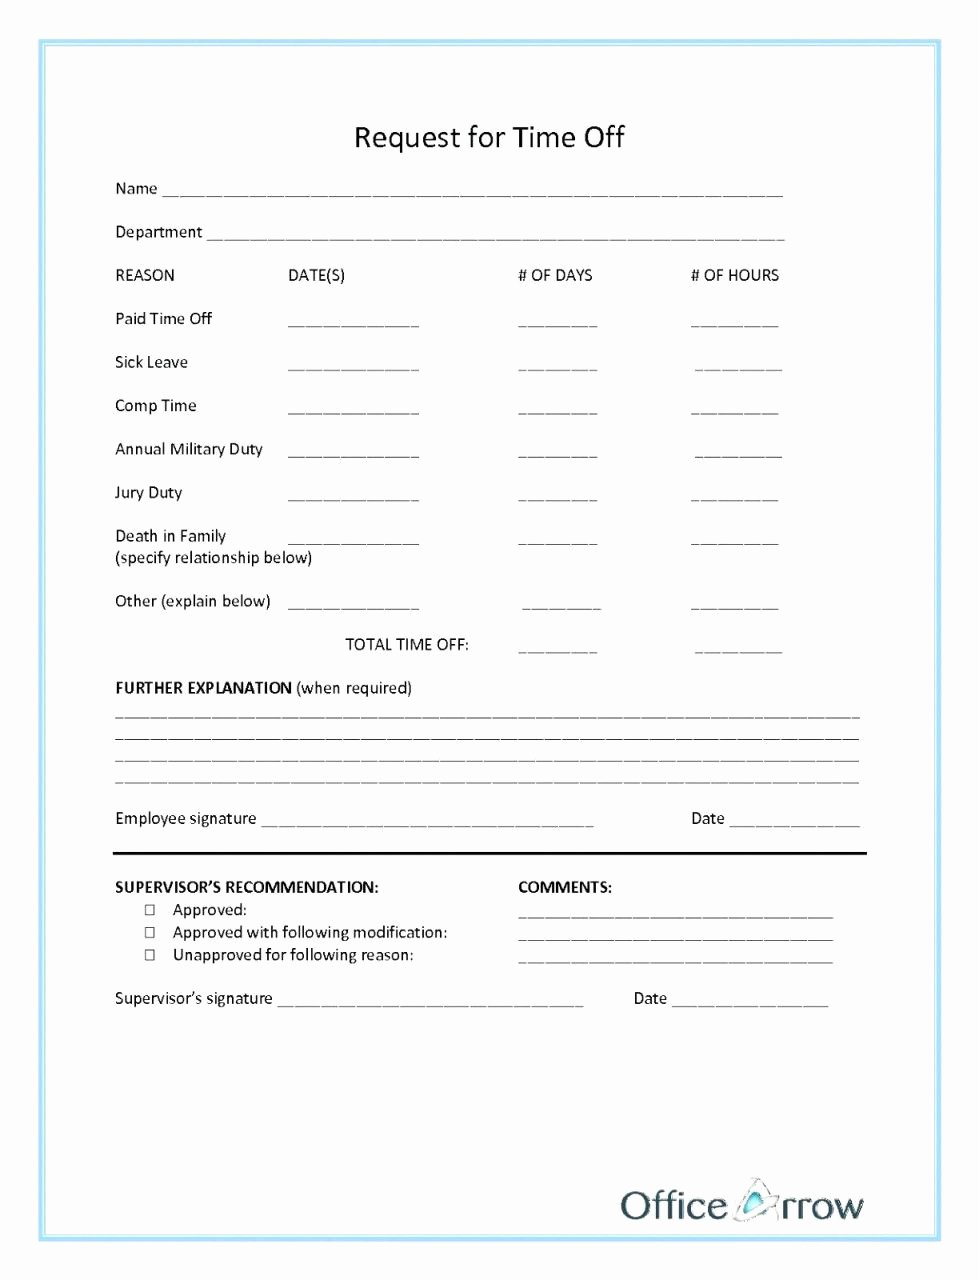 Time Off Request form Template New Paid Time F form